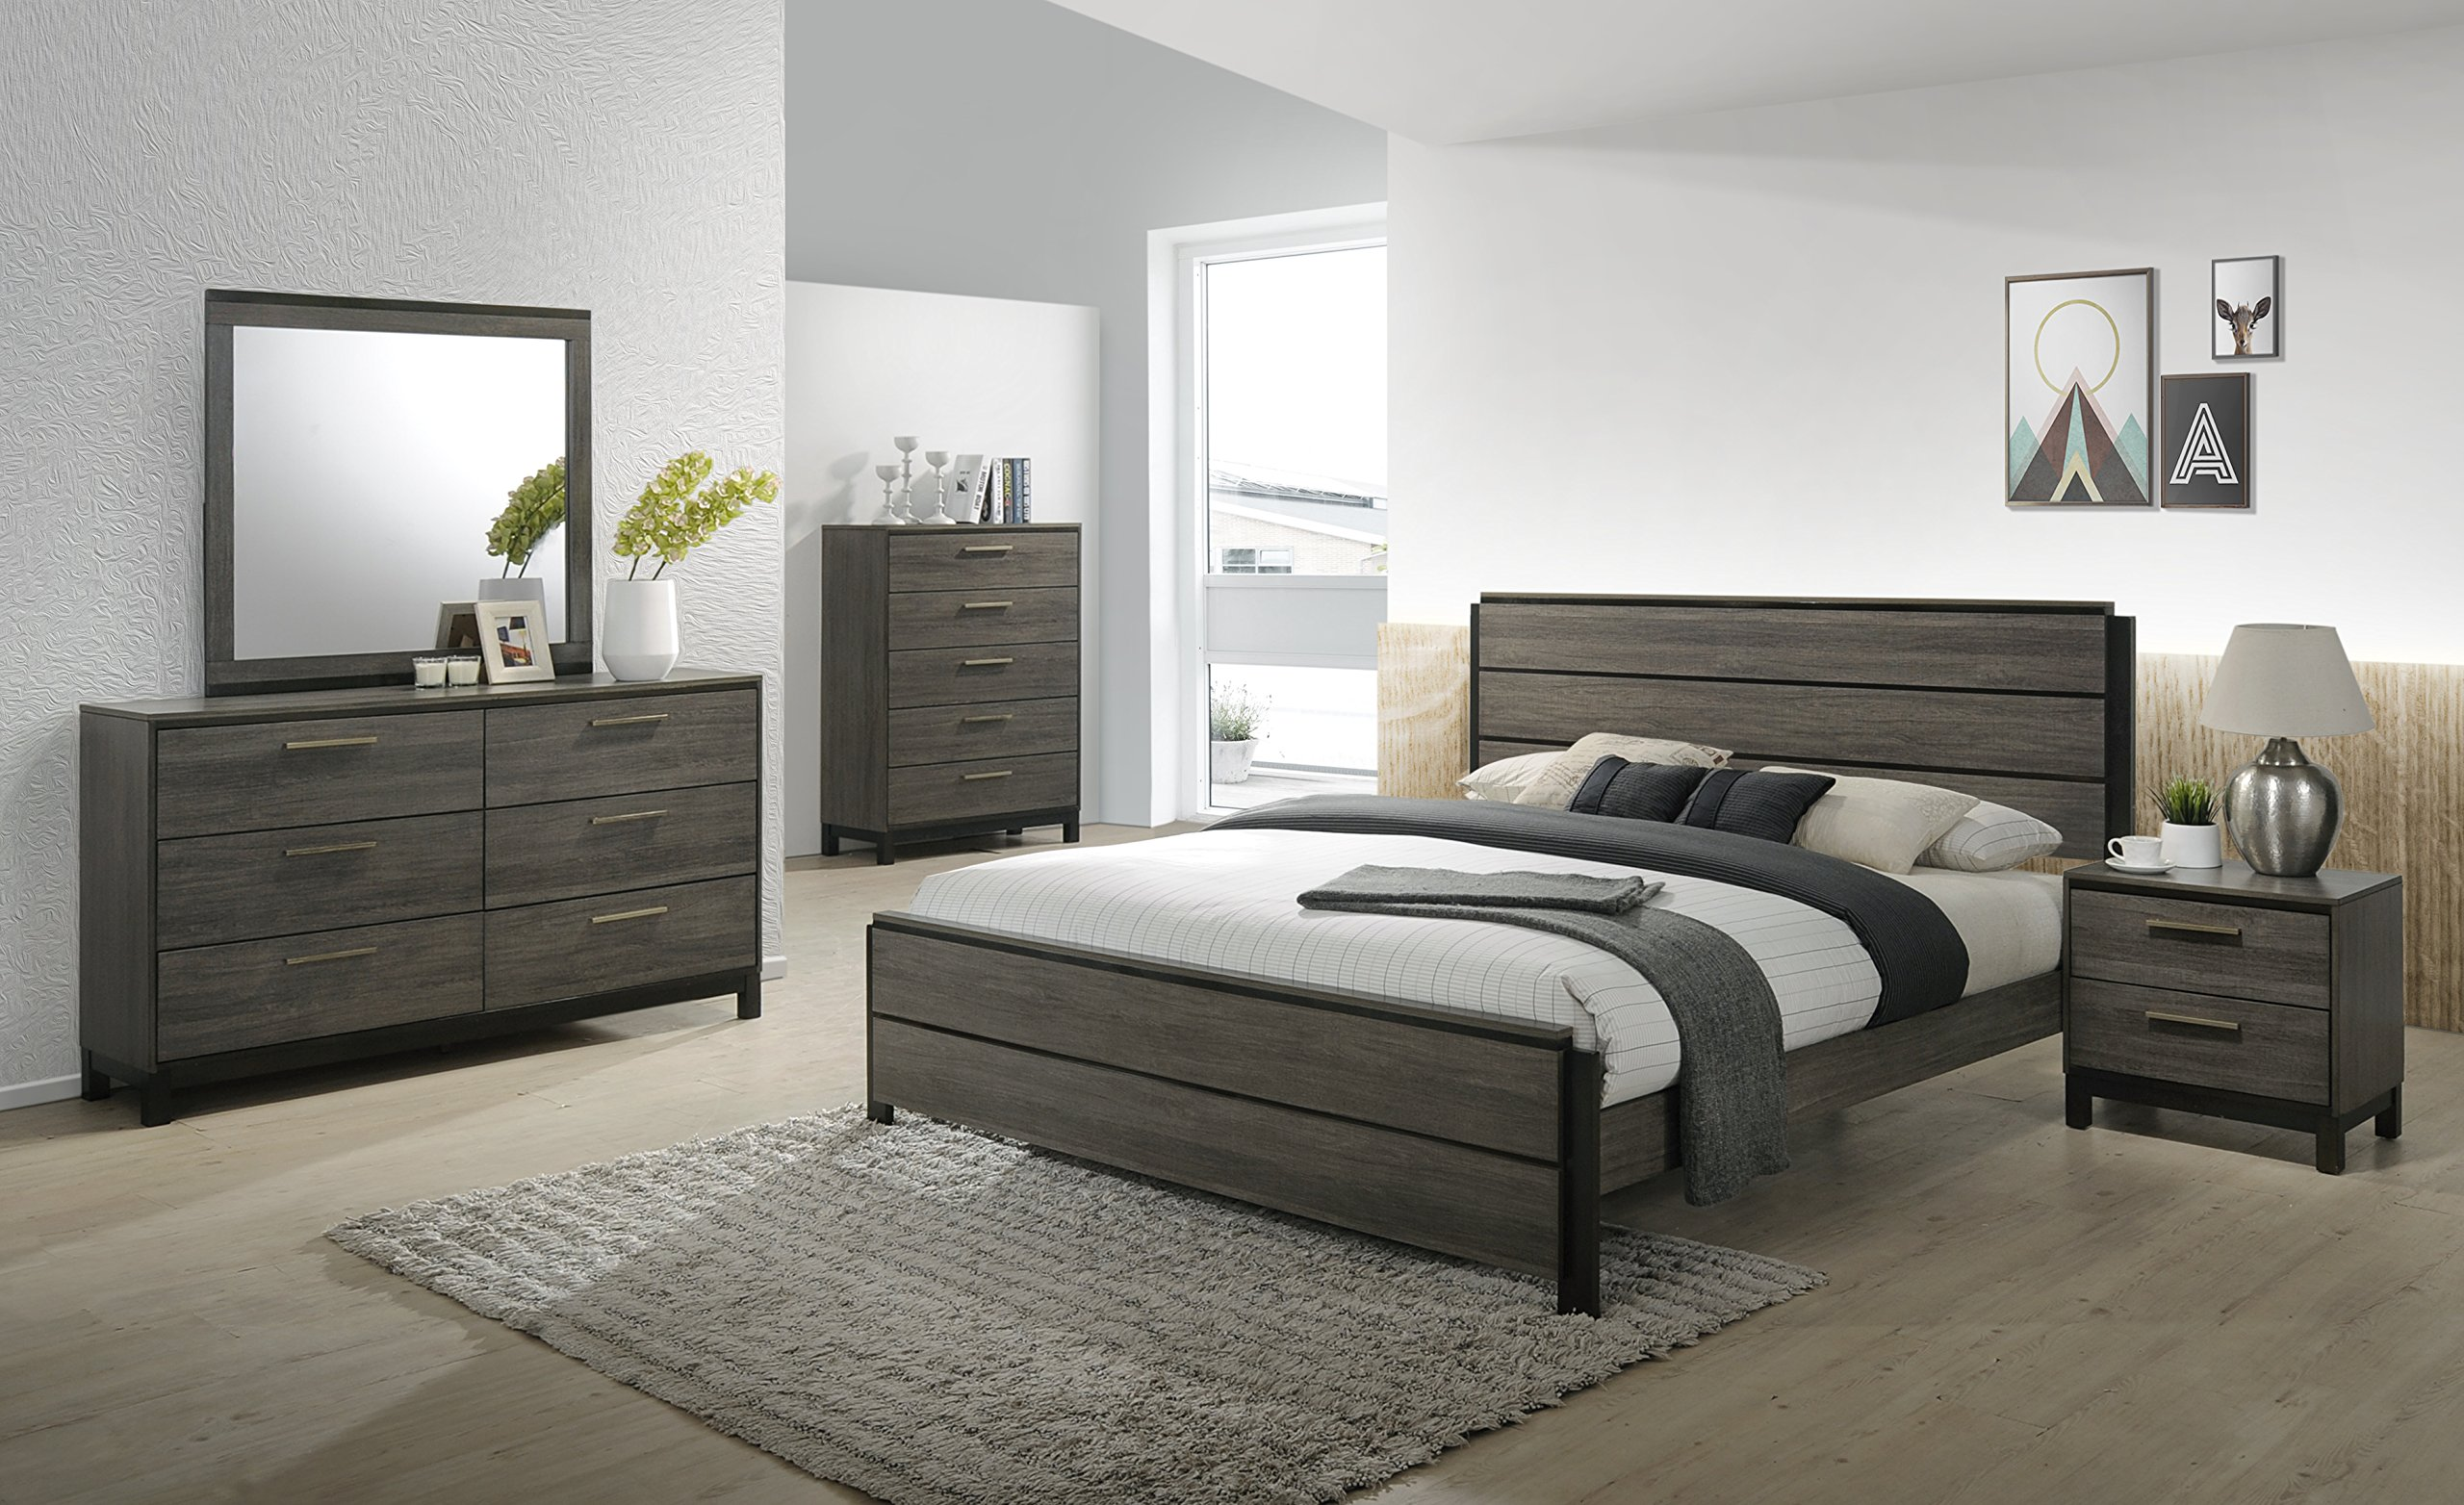 Roundhill Furniture Ioana 187 Antique Grey Finish Wood Bed Room Set, King Size Bed, Dresser, Mirror, Night Stand, Chest